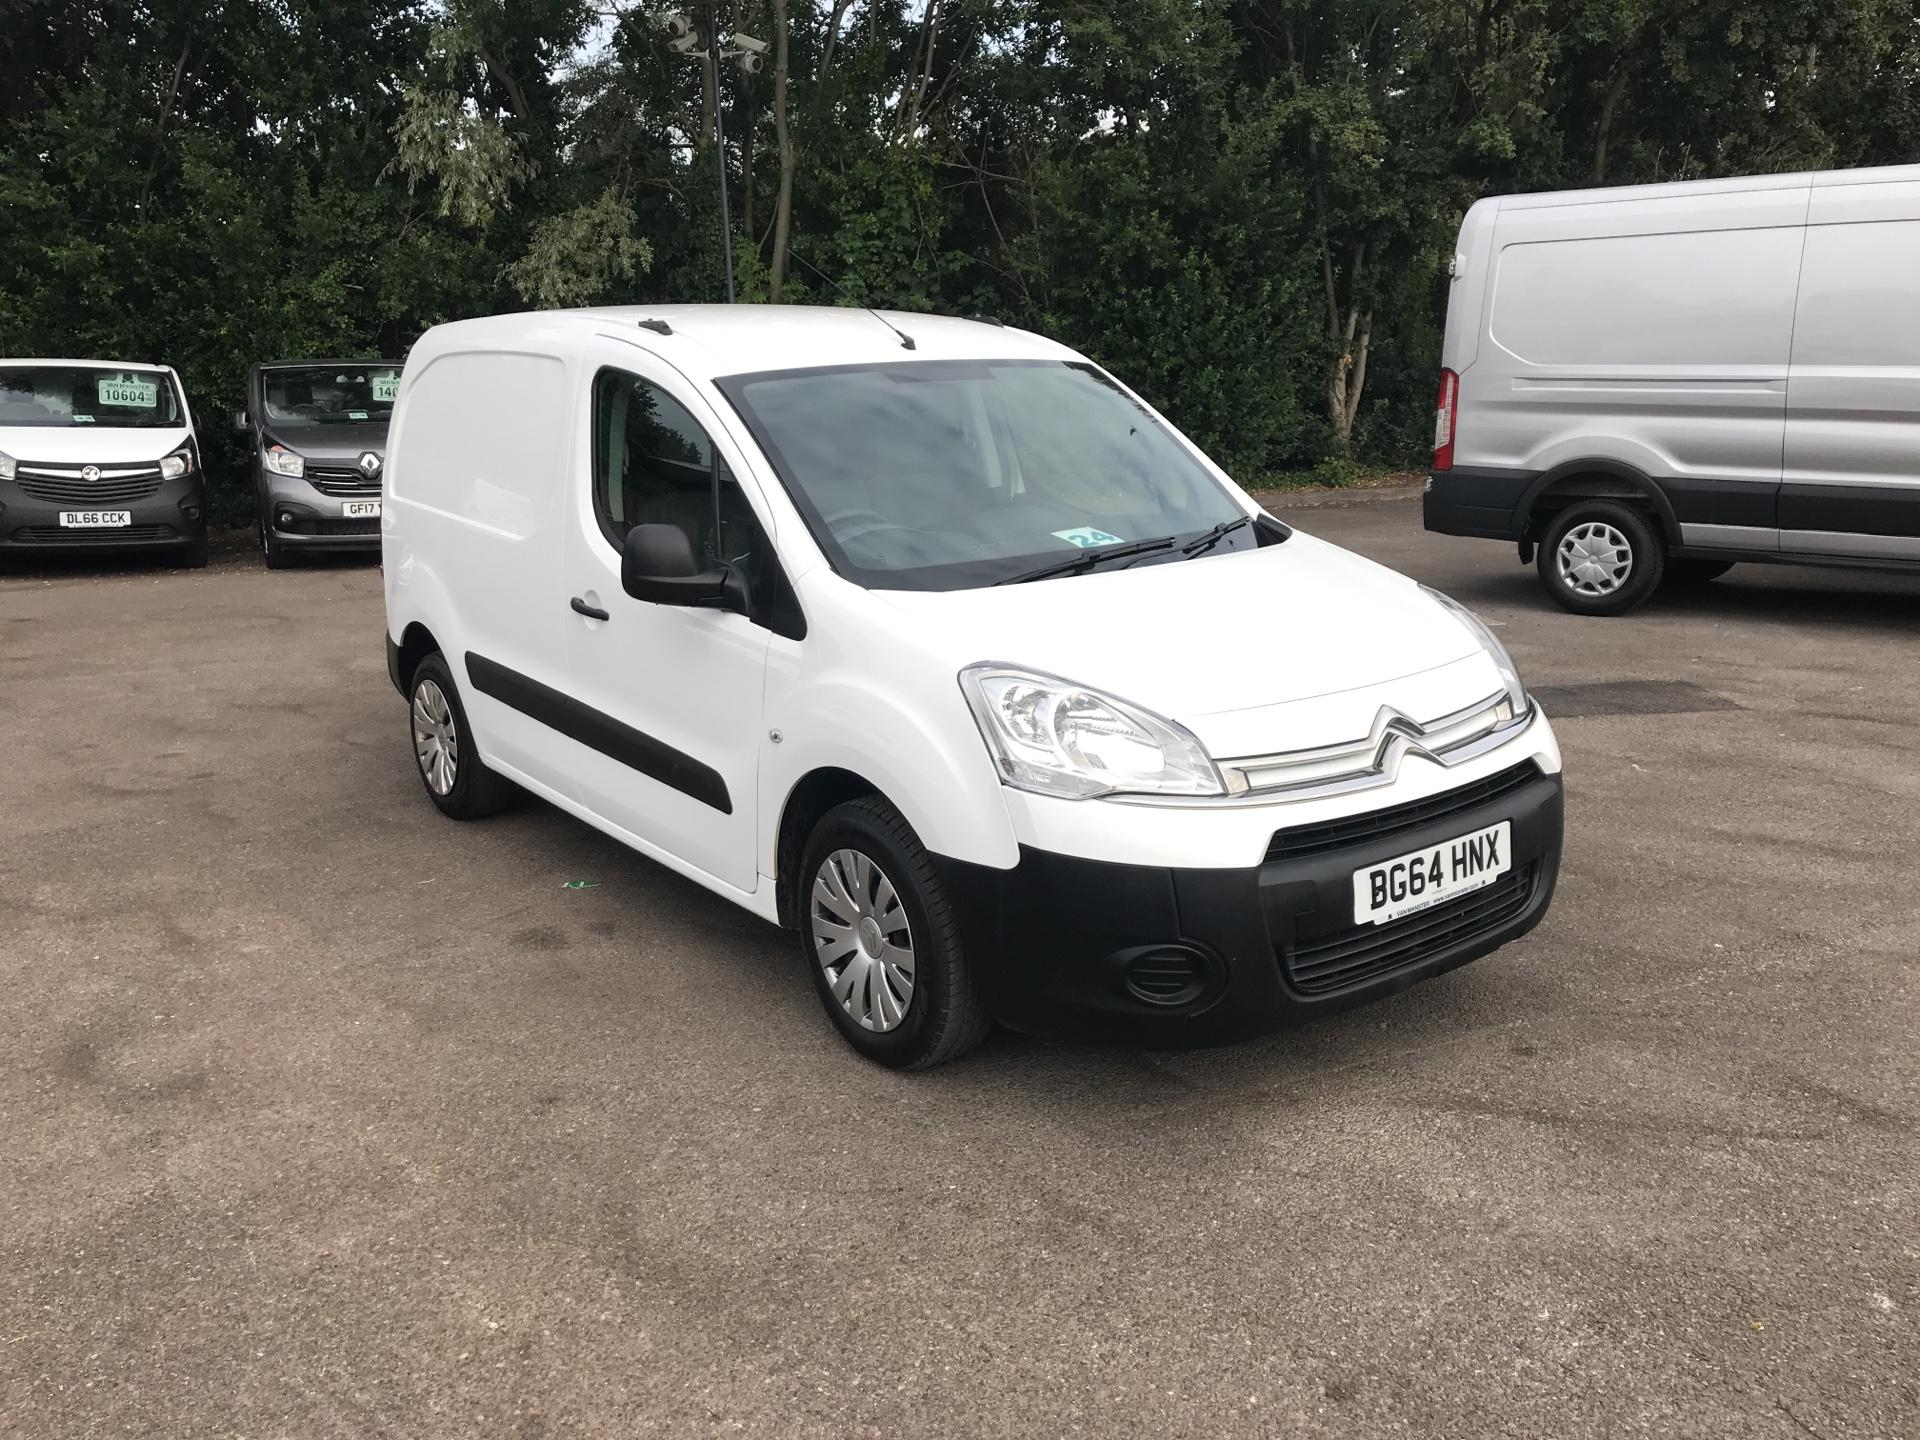 2014 Citroen Berlingo  L1 DIESEL 1.6 HDI 625KG ENTERPRISE 75PS EURO 4/5 (BG64HNX)